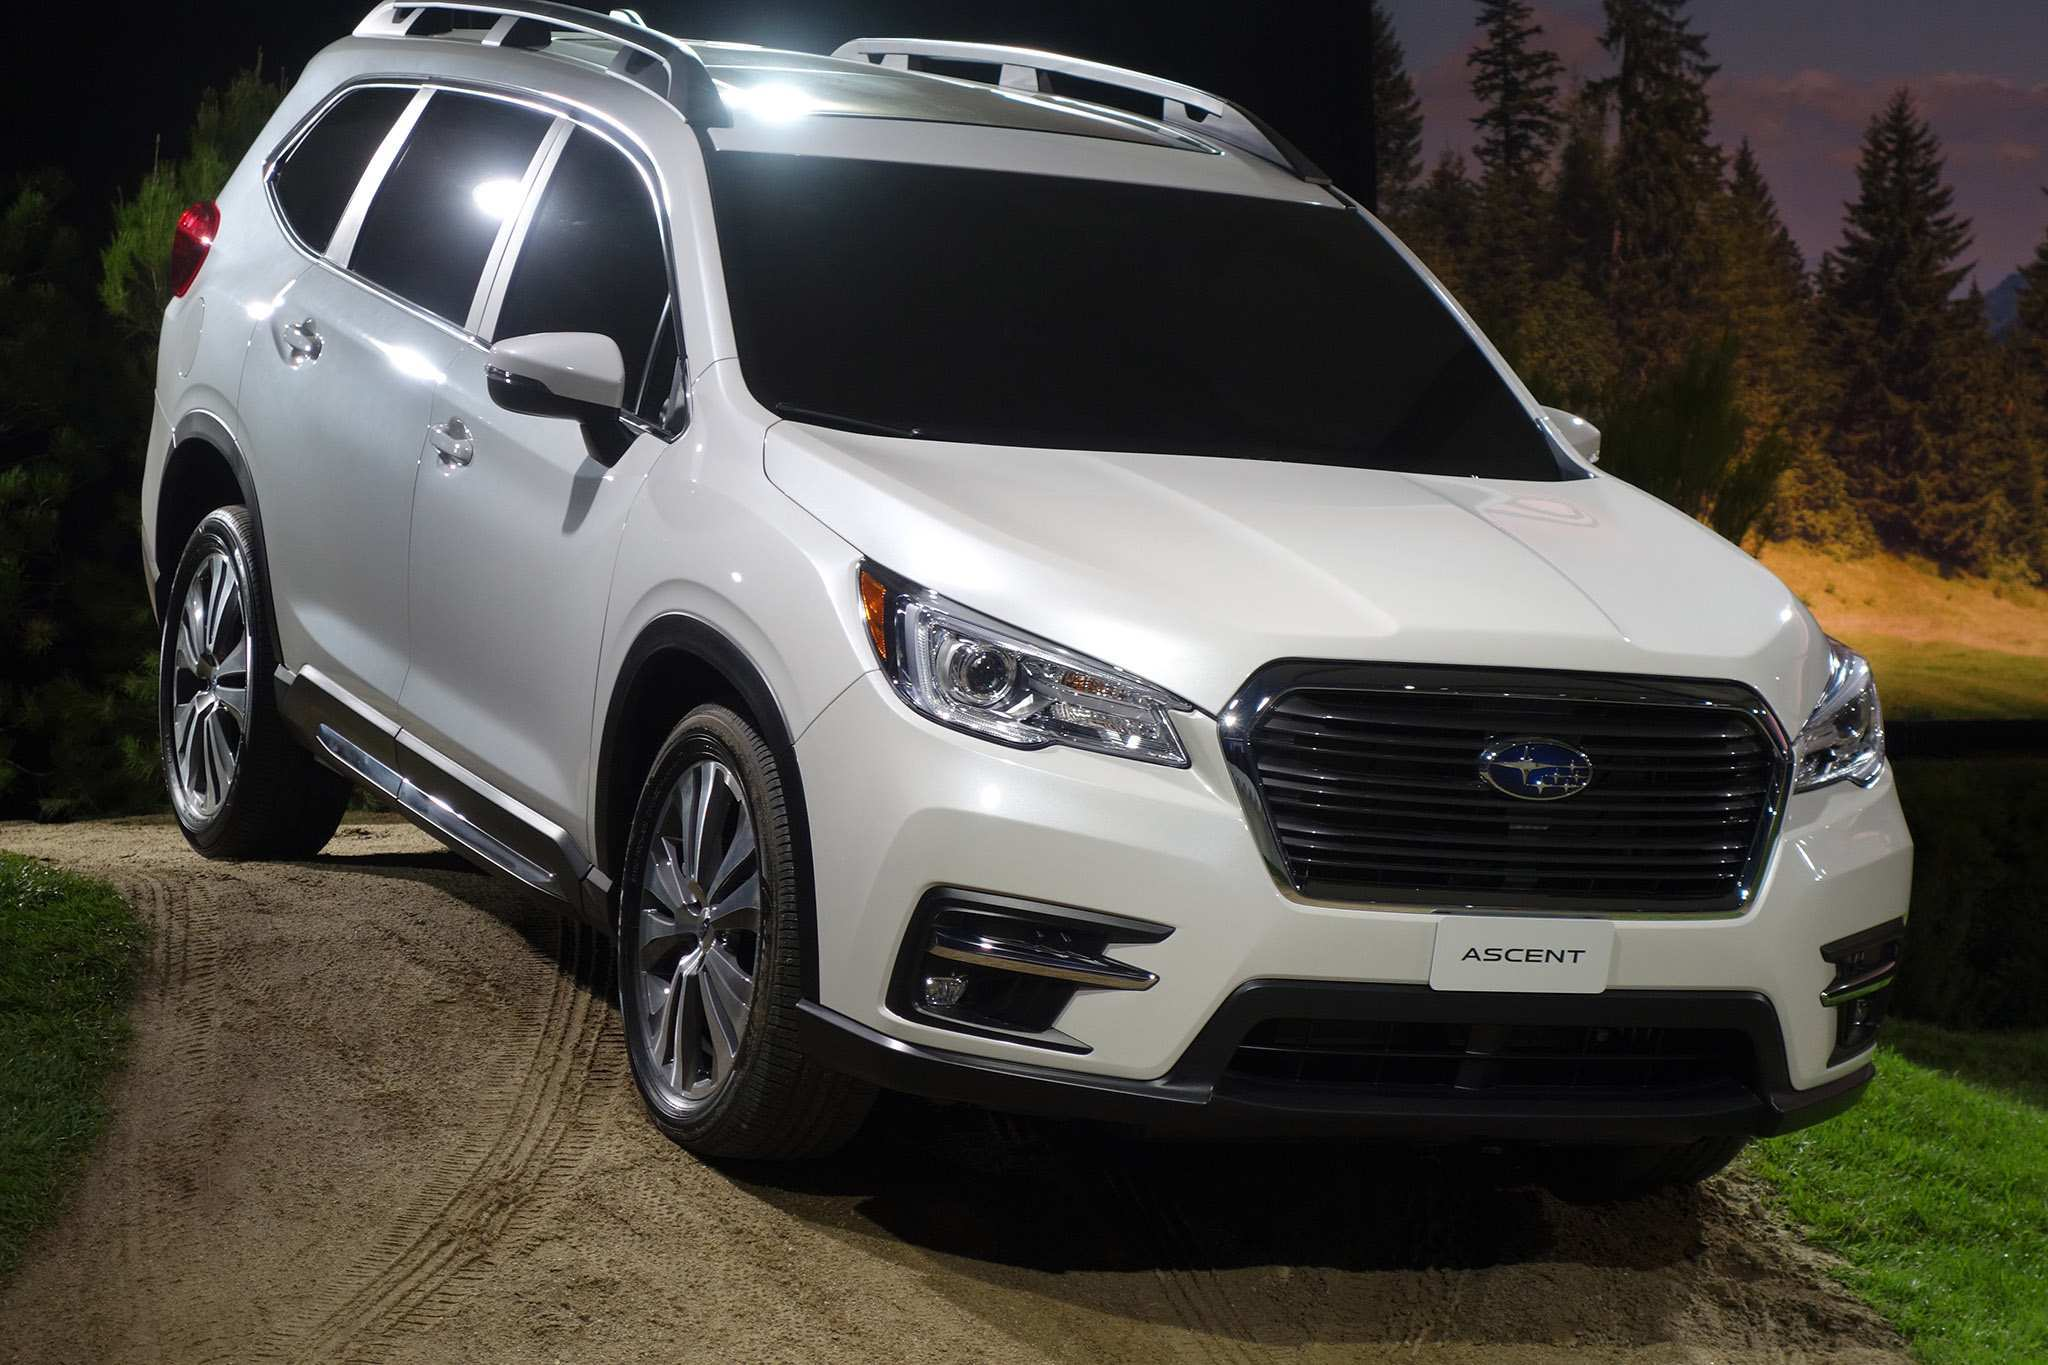 67 Concept of 2020 Subaru Ascent GVWr Review by 2020 Subaru Ascent GVWr